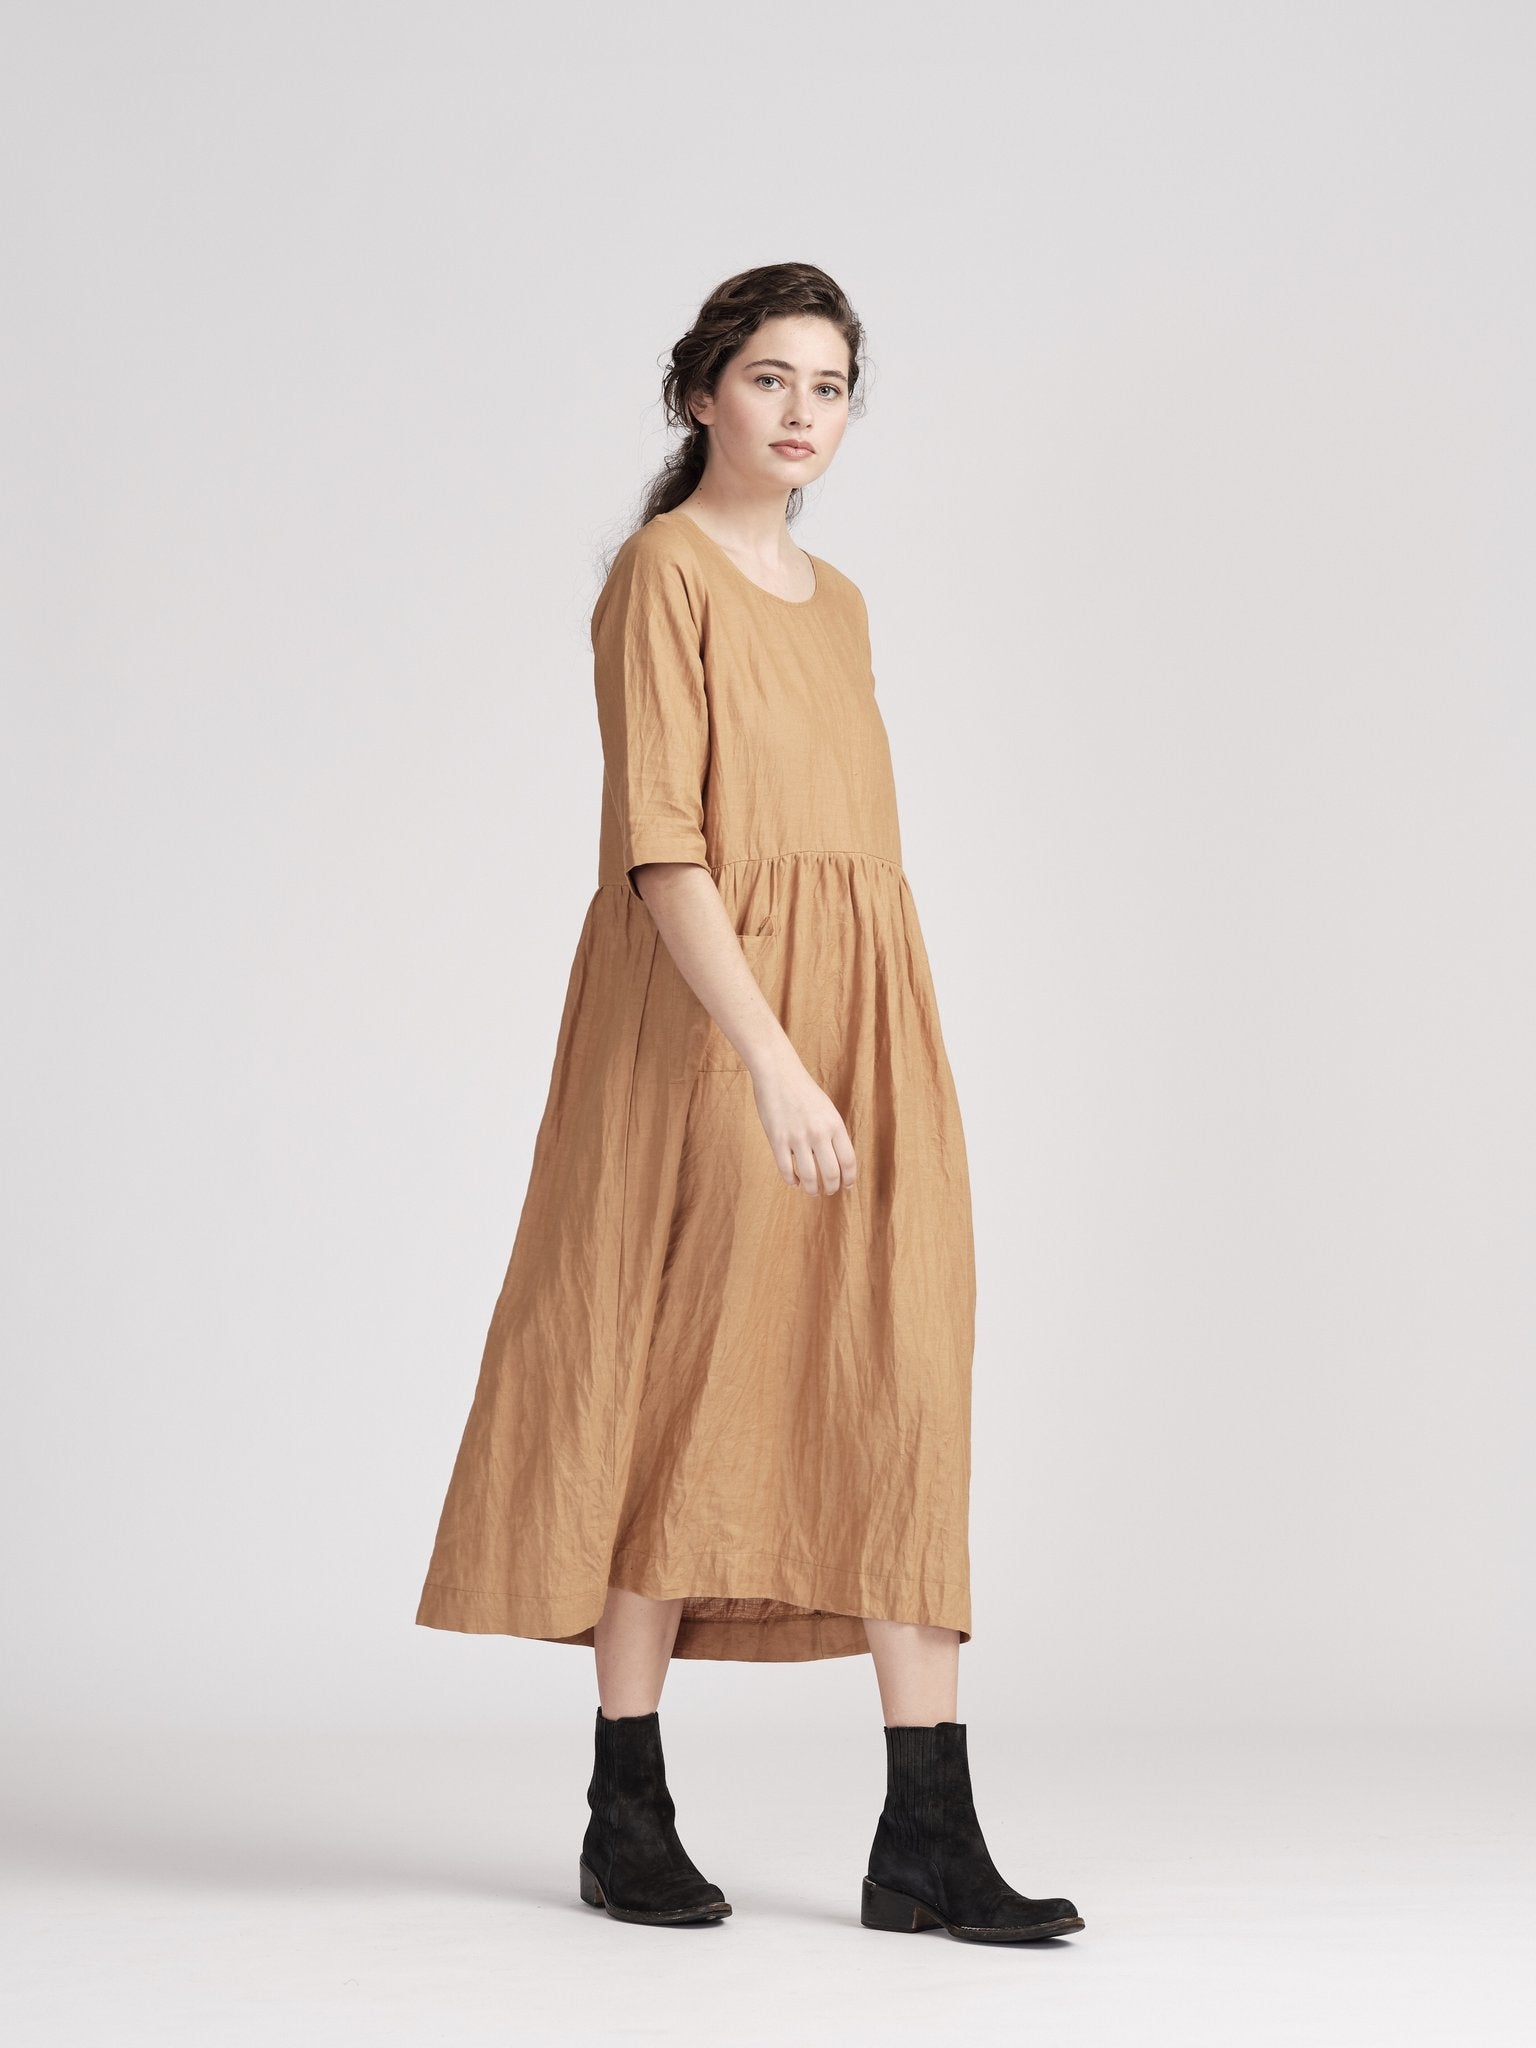 Widdess Vivian Dress - Honey Bee